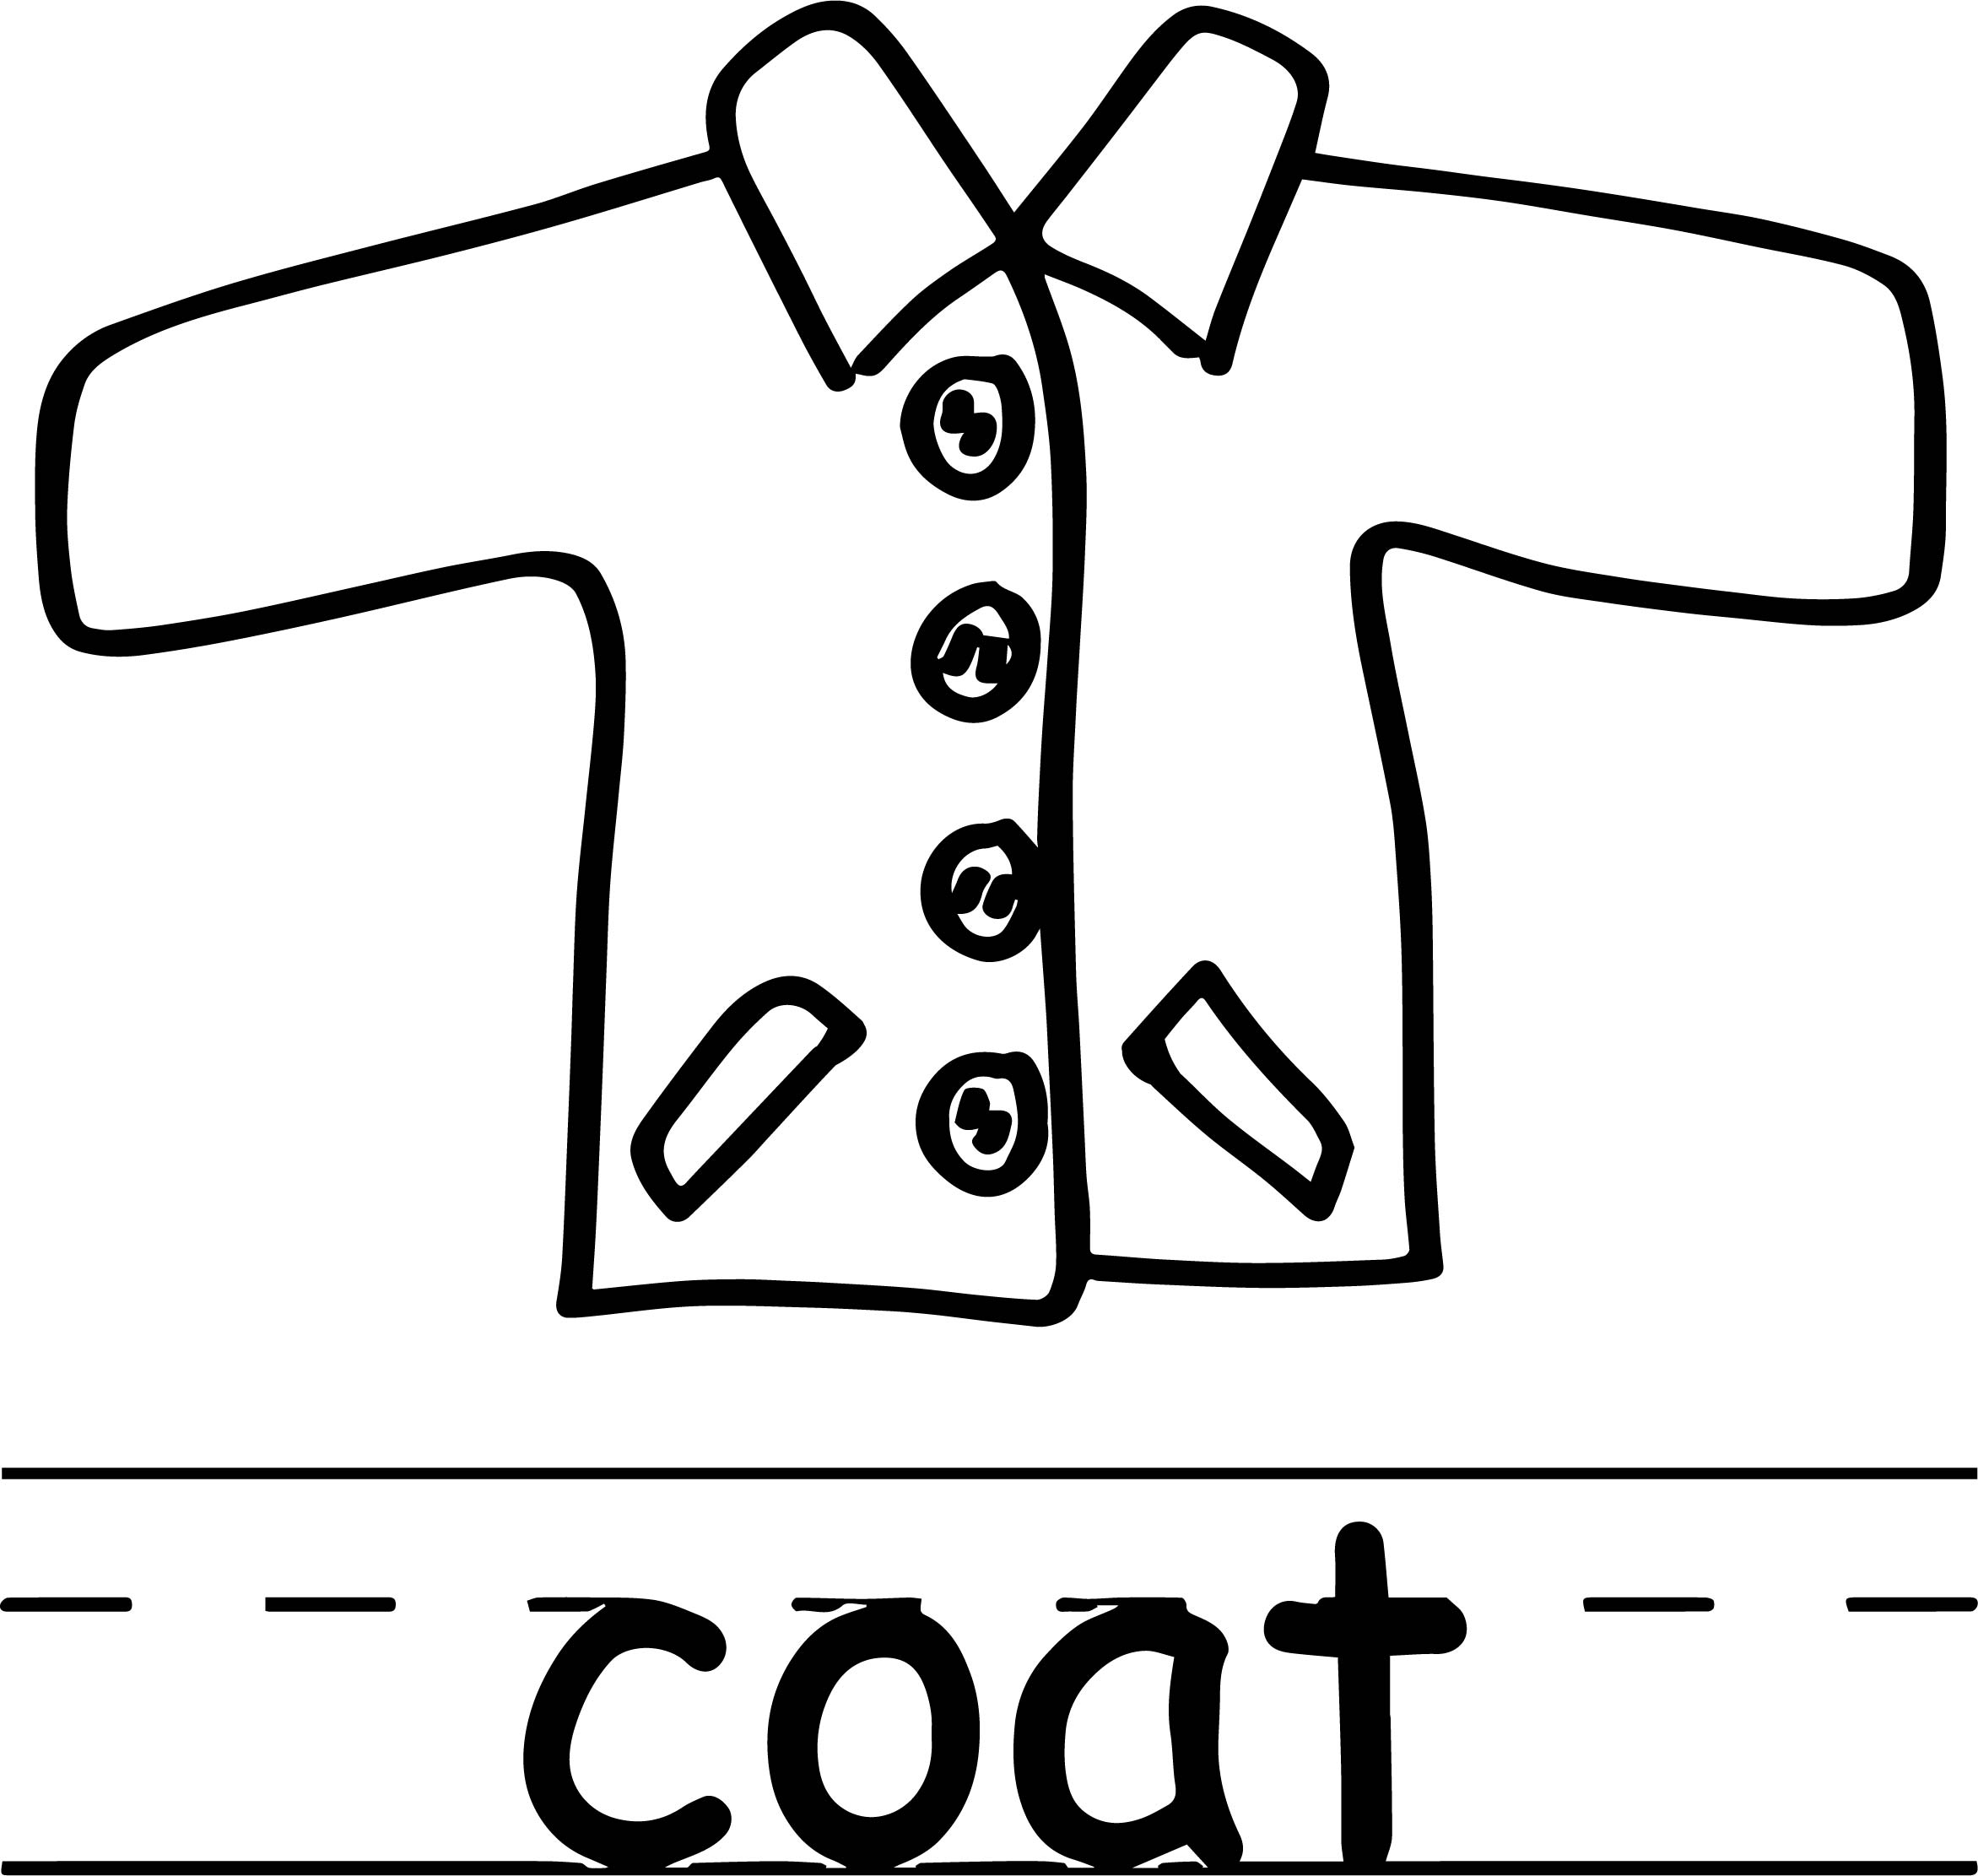 Coat Abc Teach Coloring Page